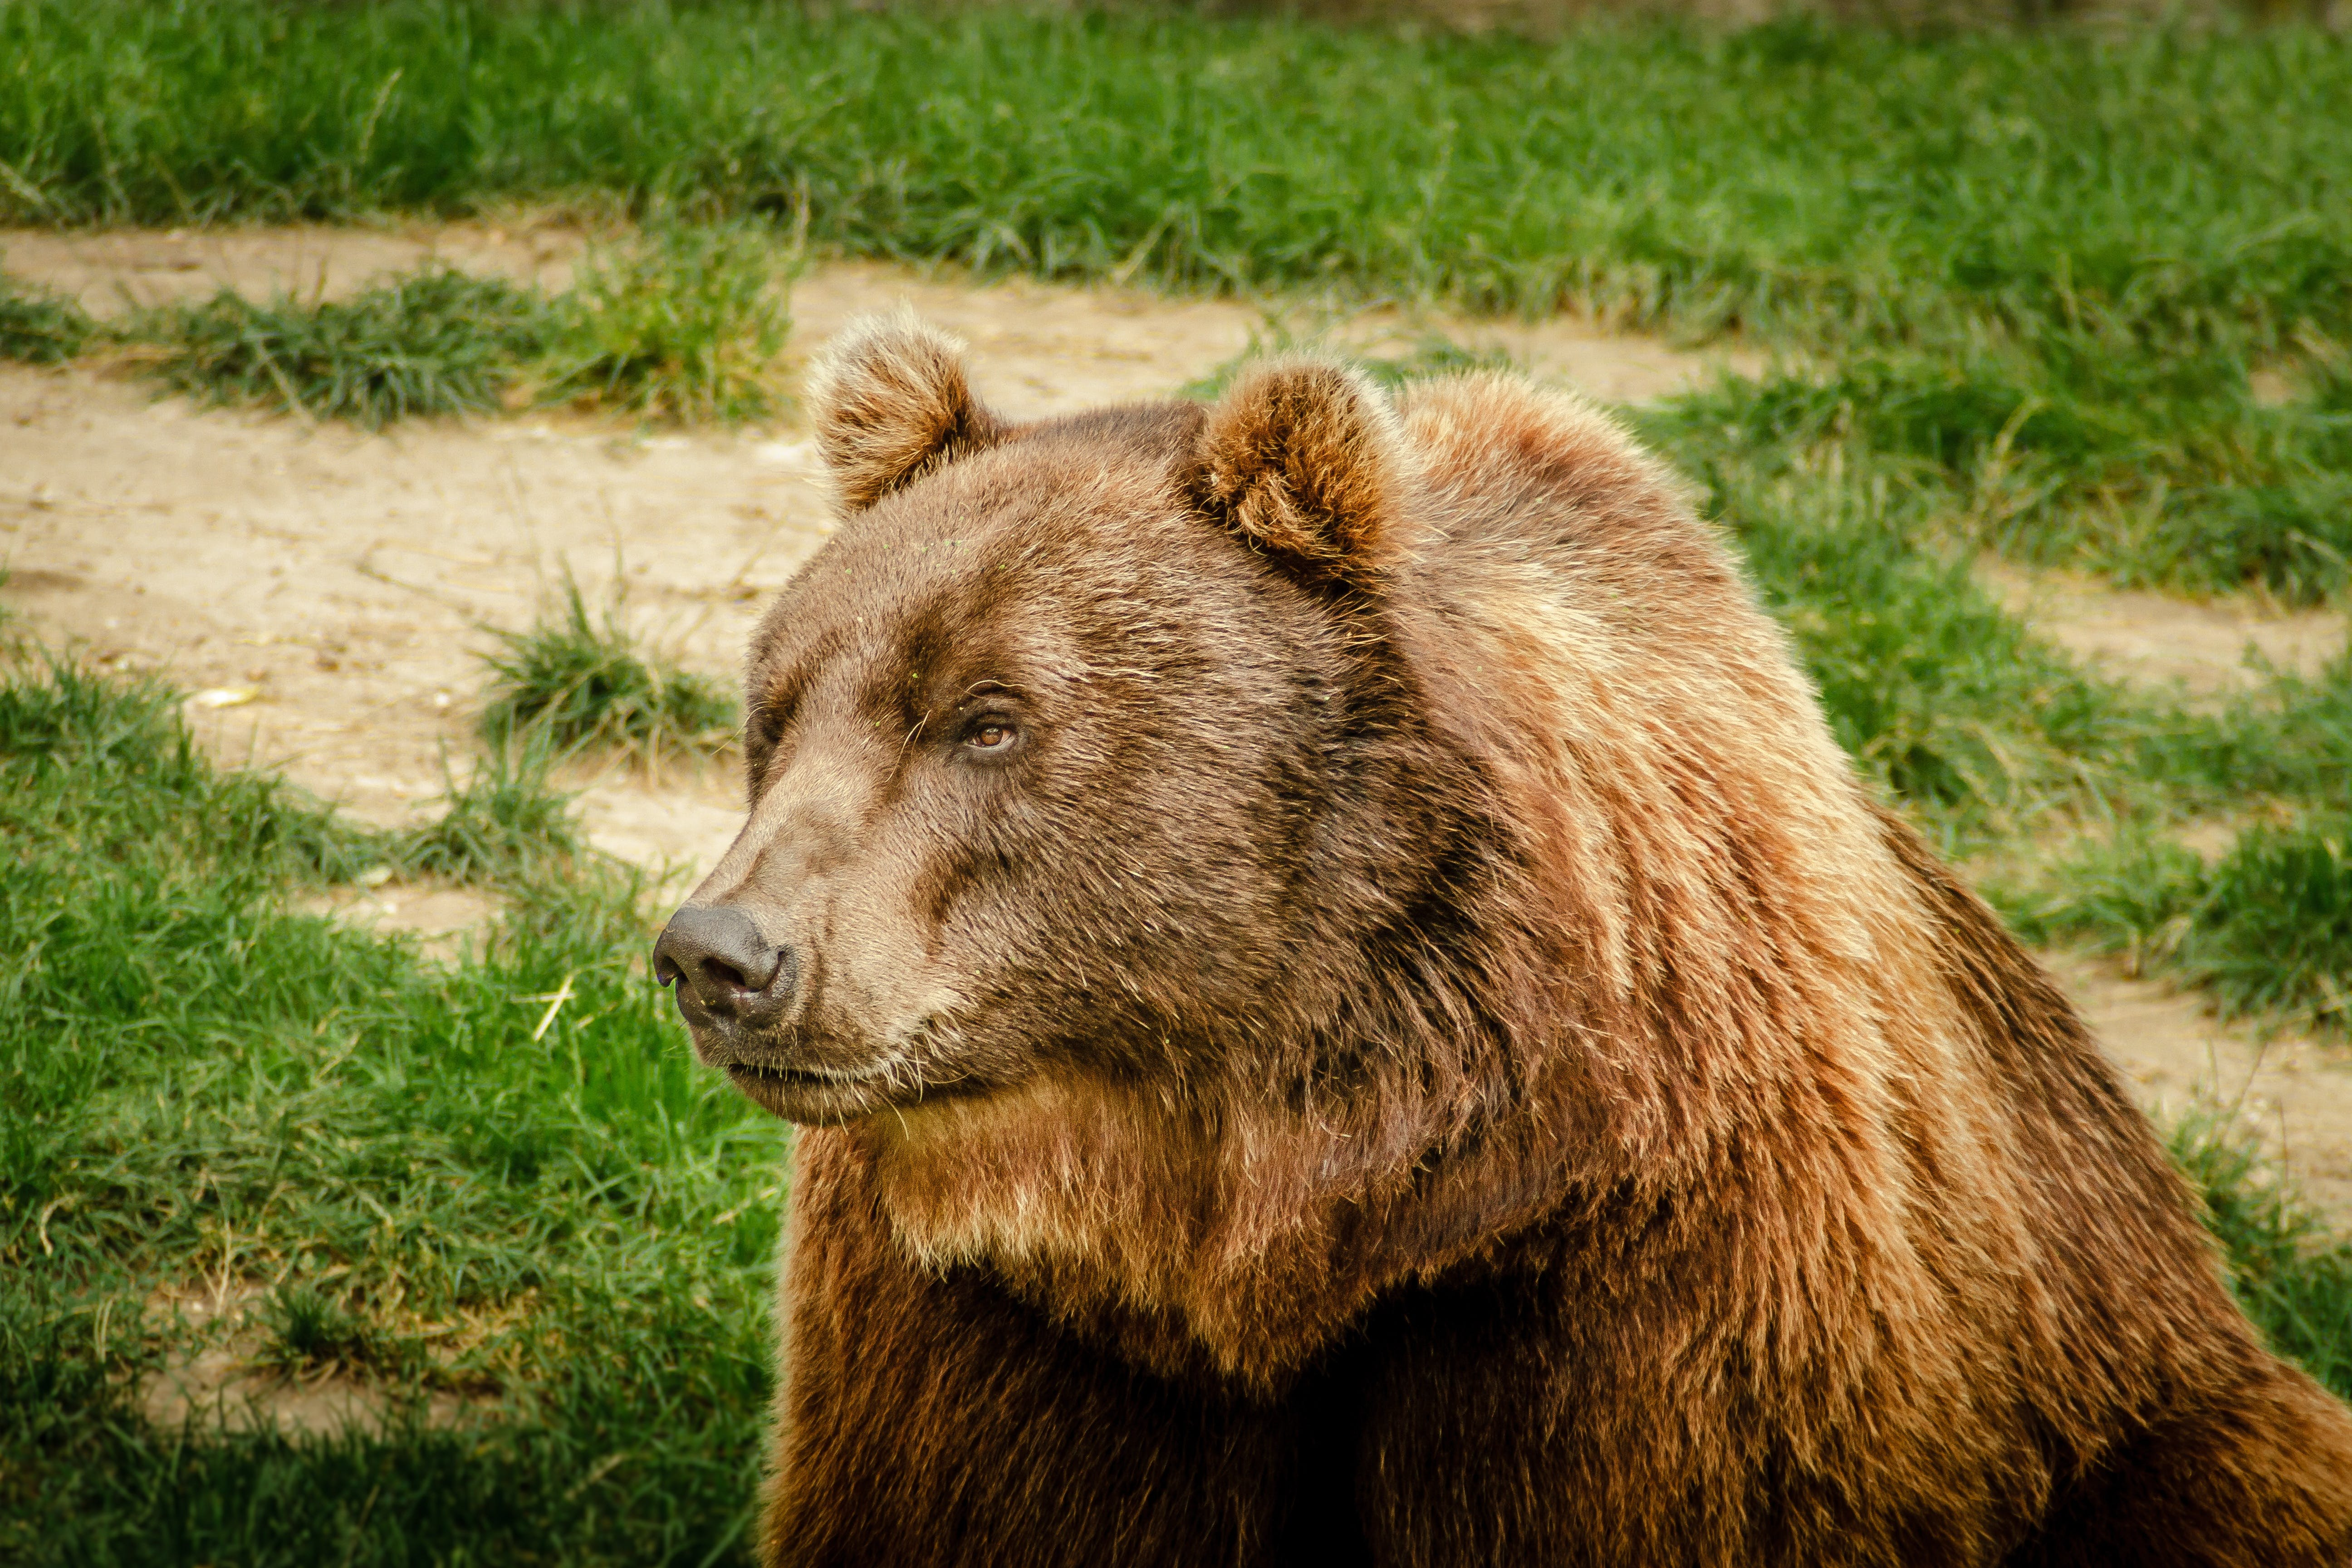 Free stock photo of animal, bear, brown bear, dangerous